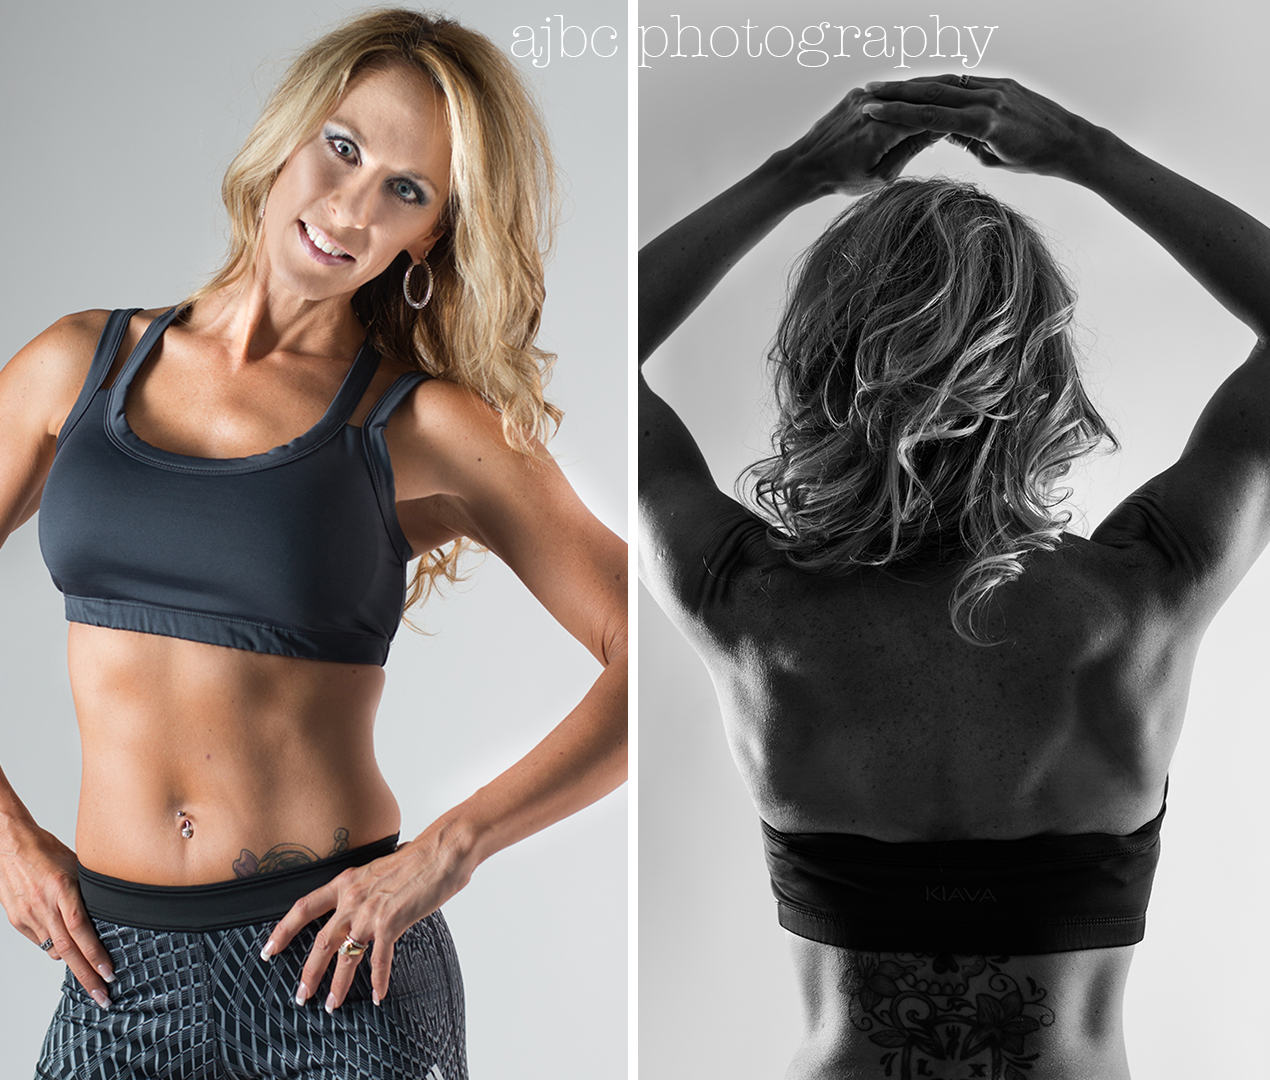 ajbcphotography_porthuron_michigan_photographer_fitness_health_exercise_beauty_muscles_fit4.jpg